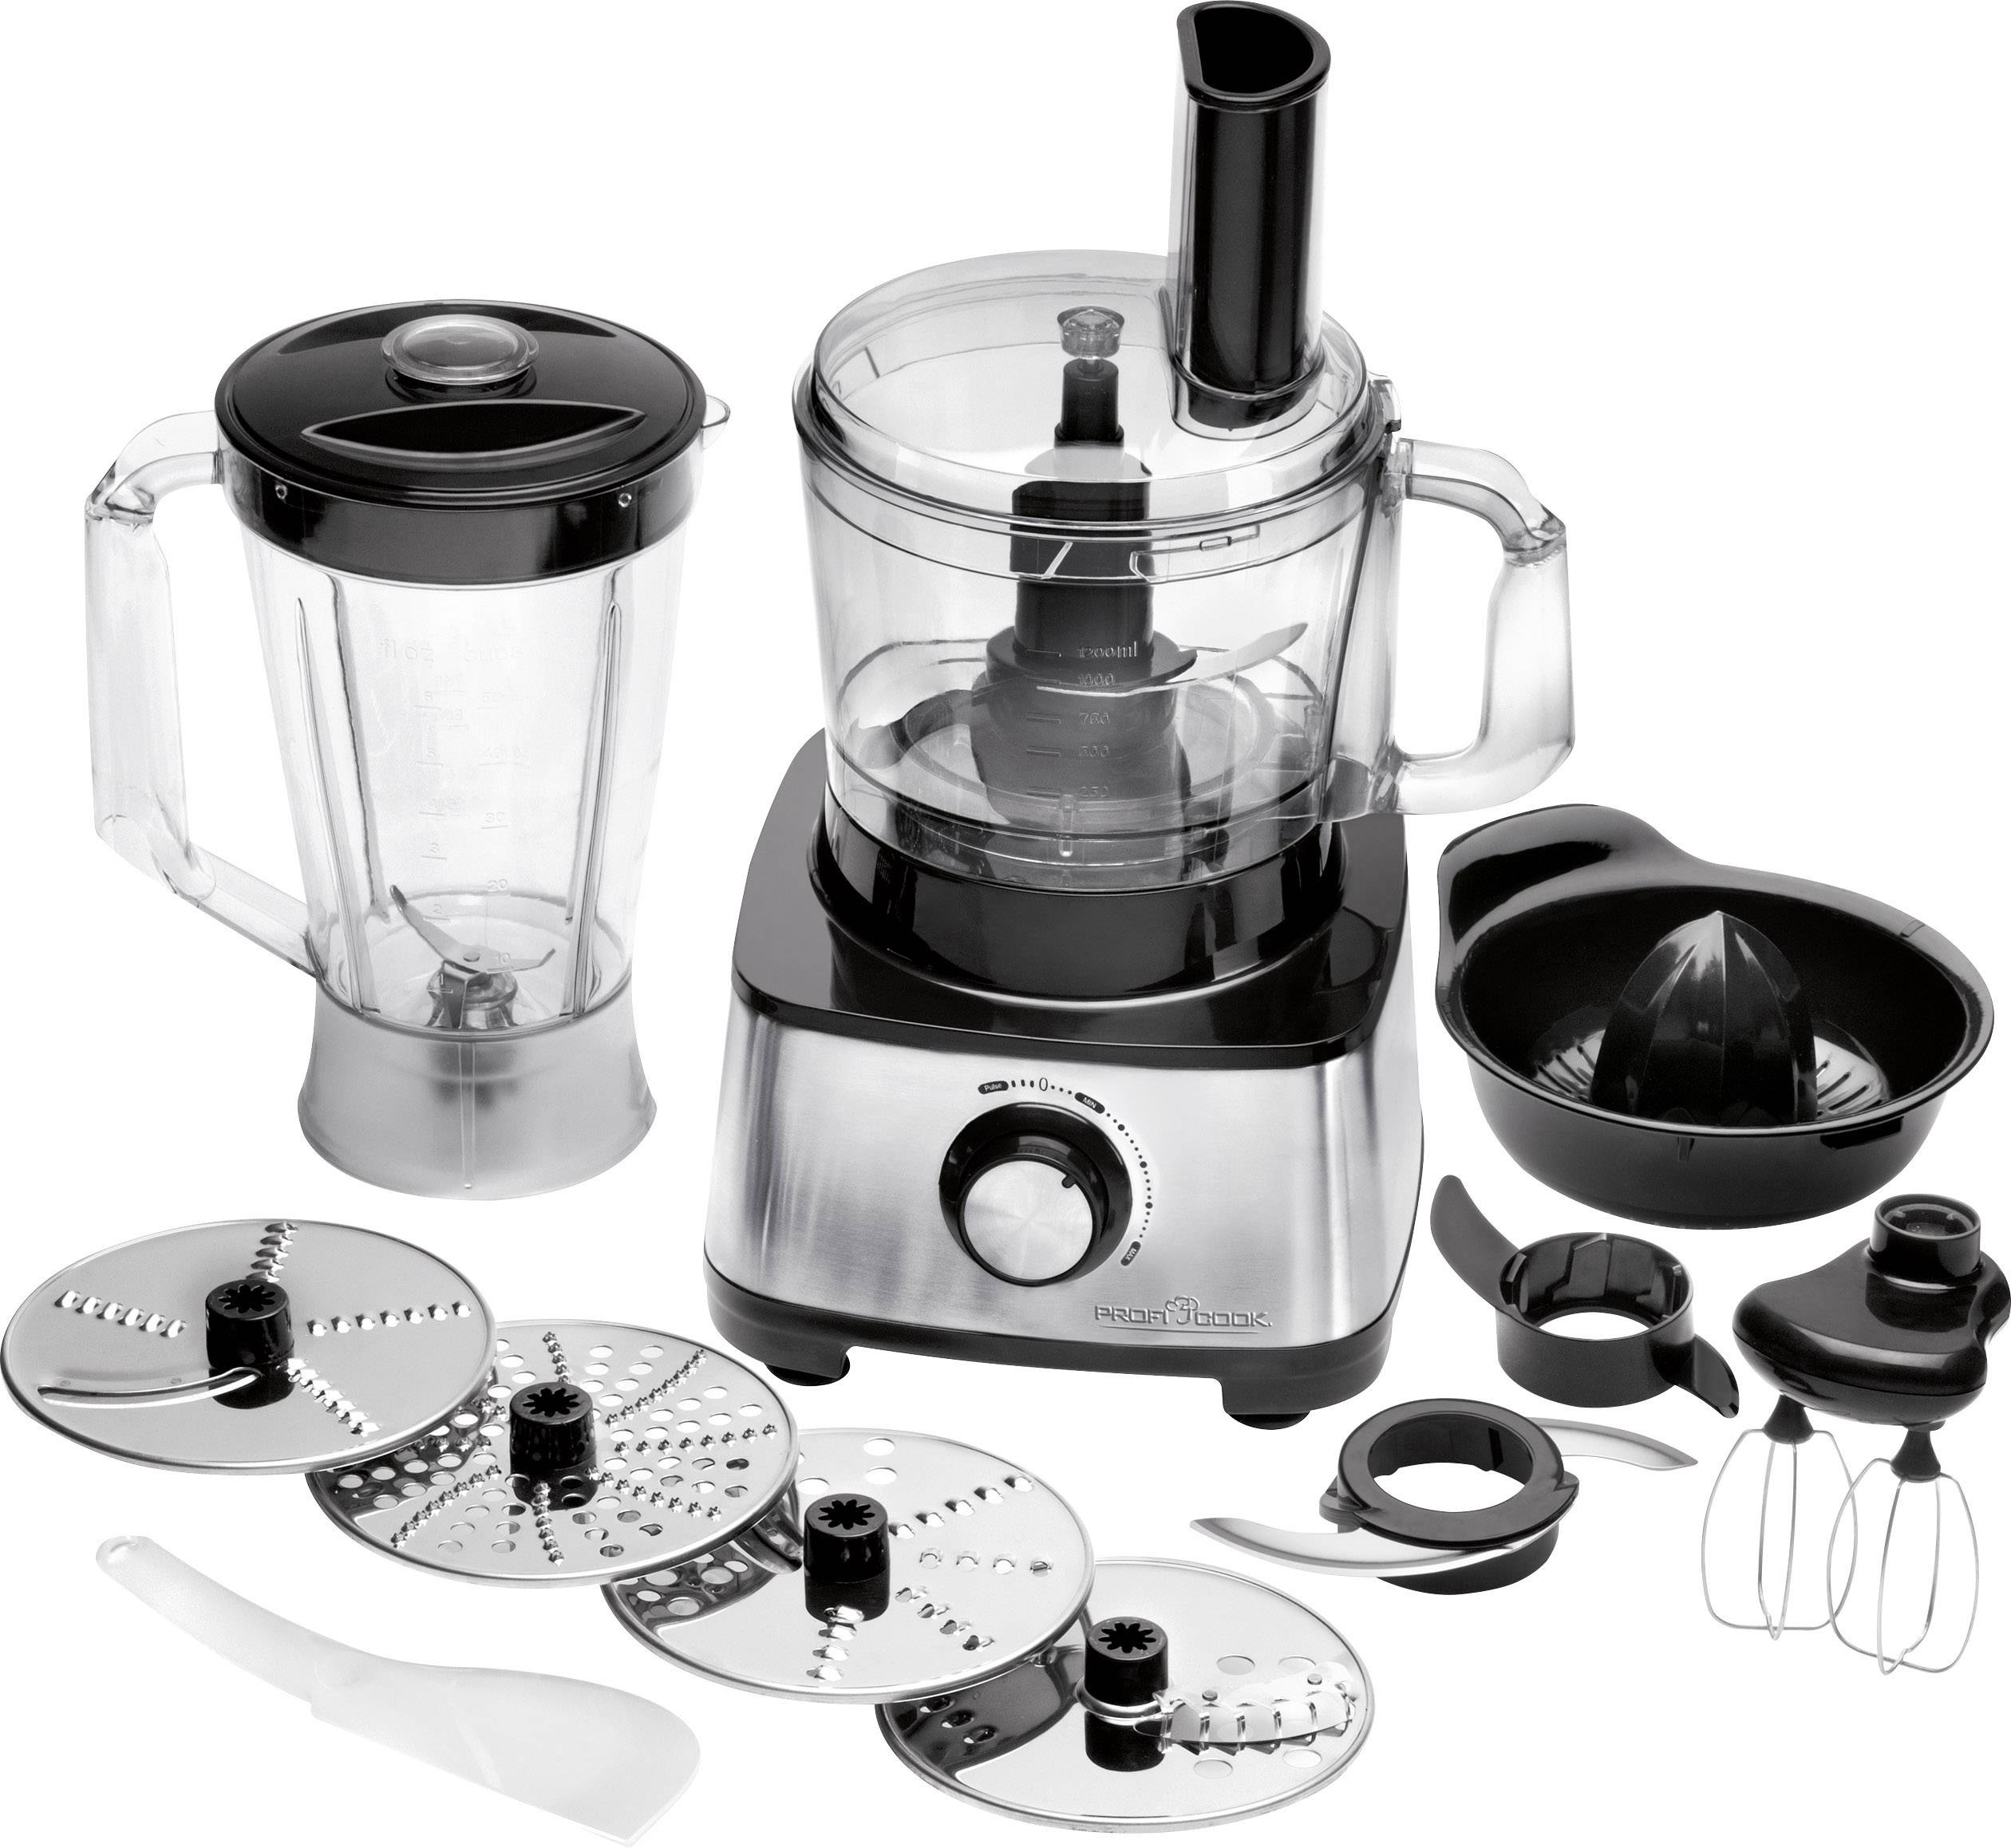 Profi Cook Kompaktküchenmaschine Profi Cook Pc Km 1063 Food Processor 1200 W Black Silver Conrad